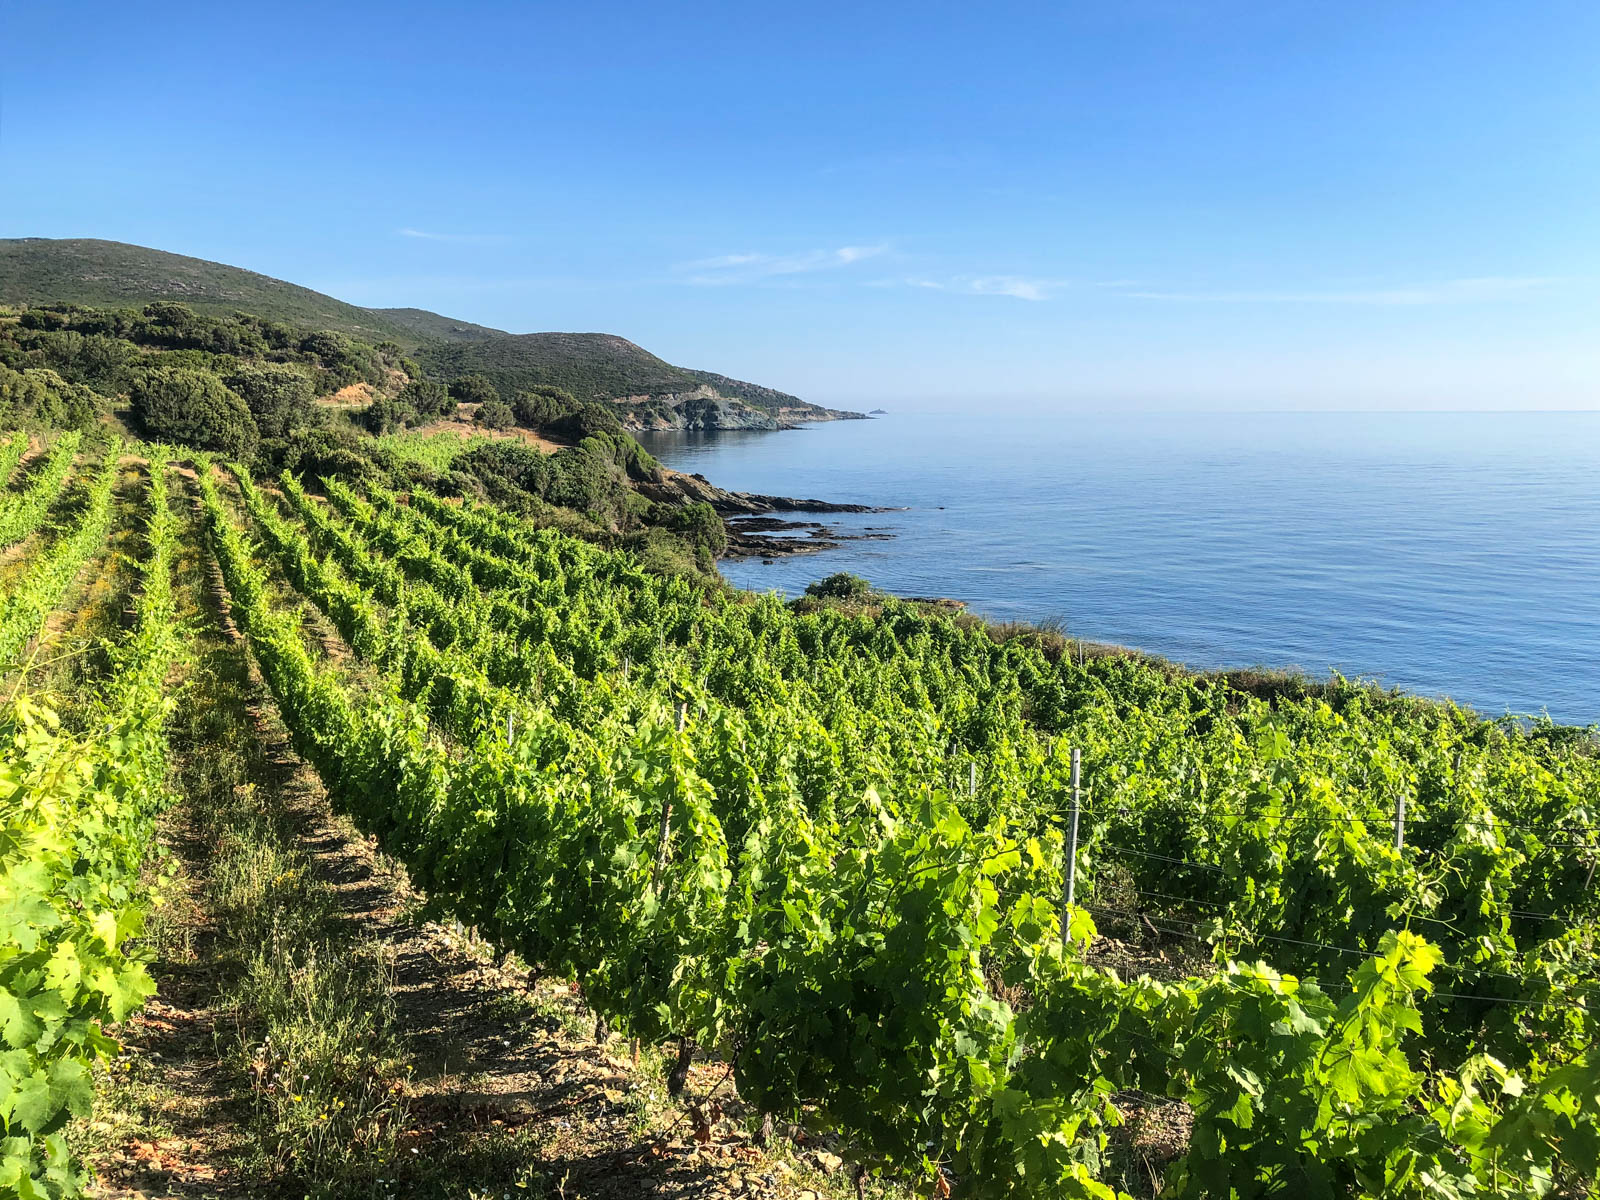 Corisca Wine Travel Guide: Where to Eat, Drink, and Stay